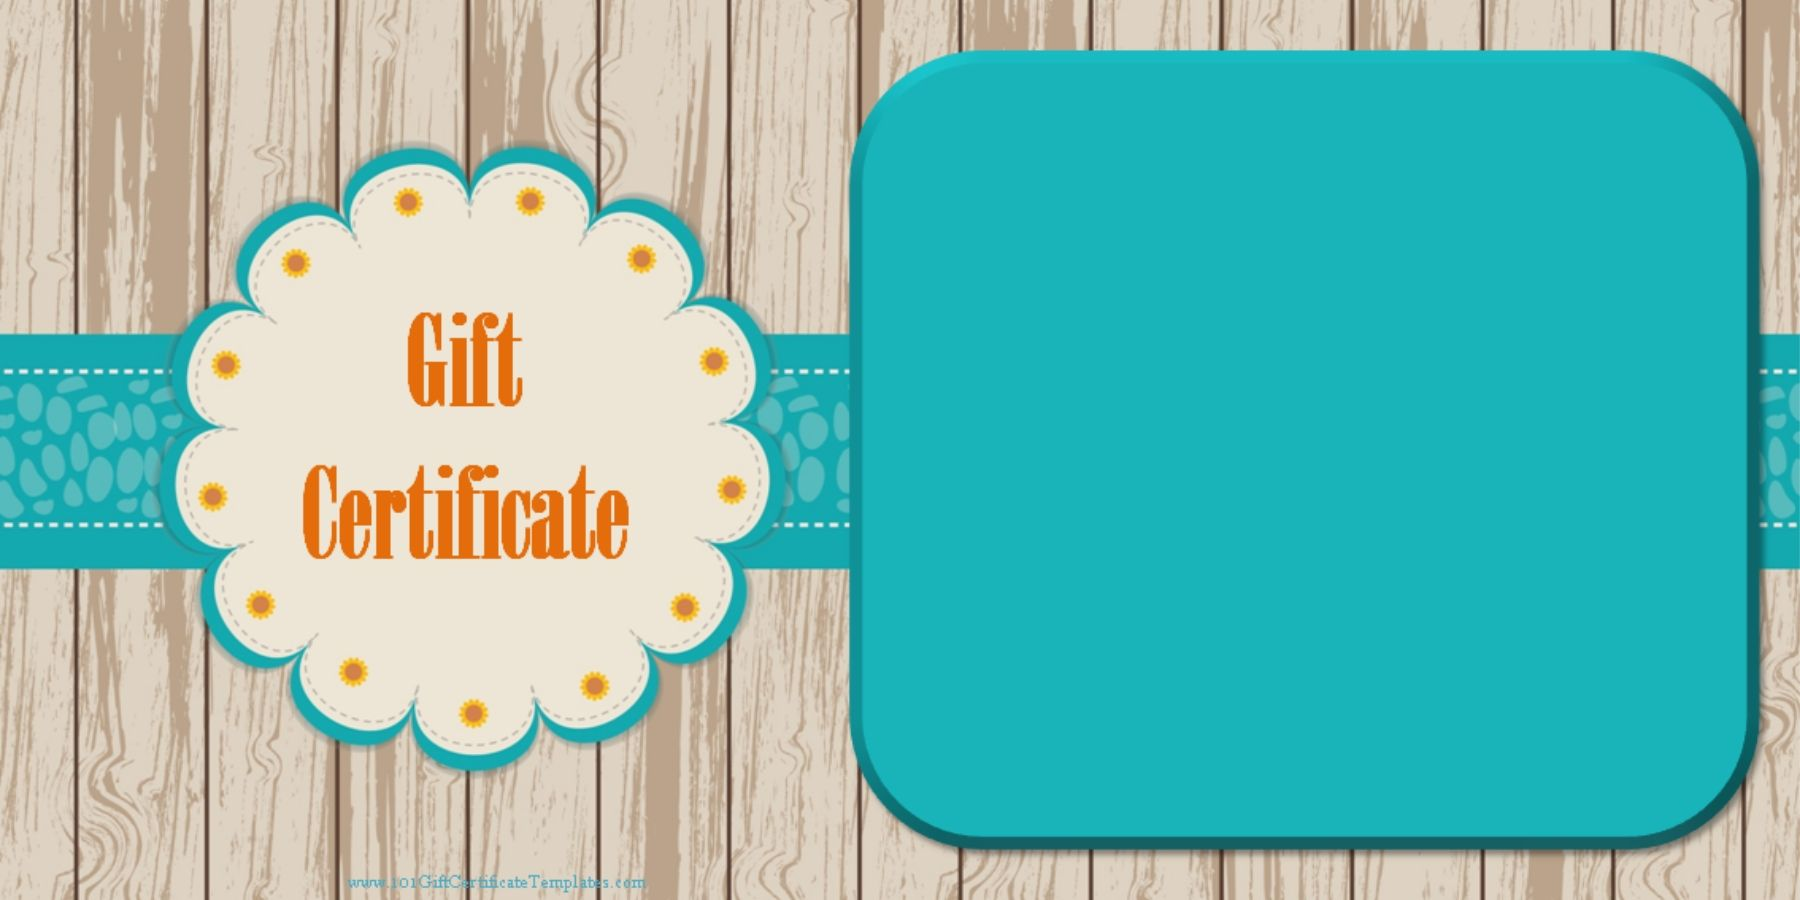 Gift certificate with a light wood background and a blue/green ...